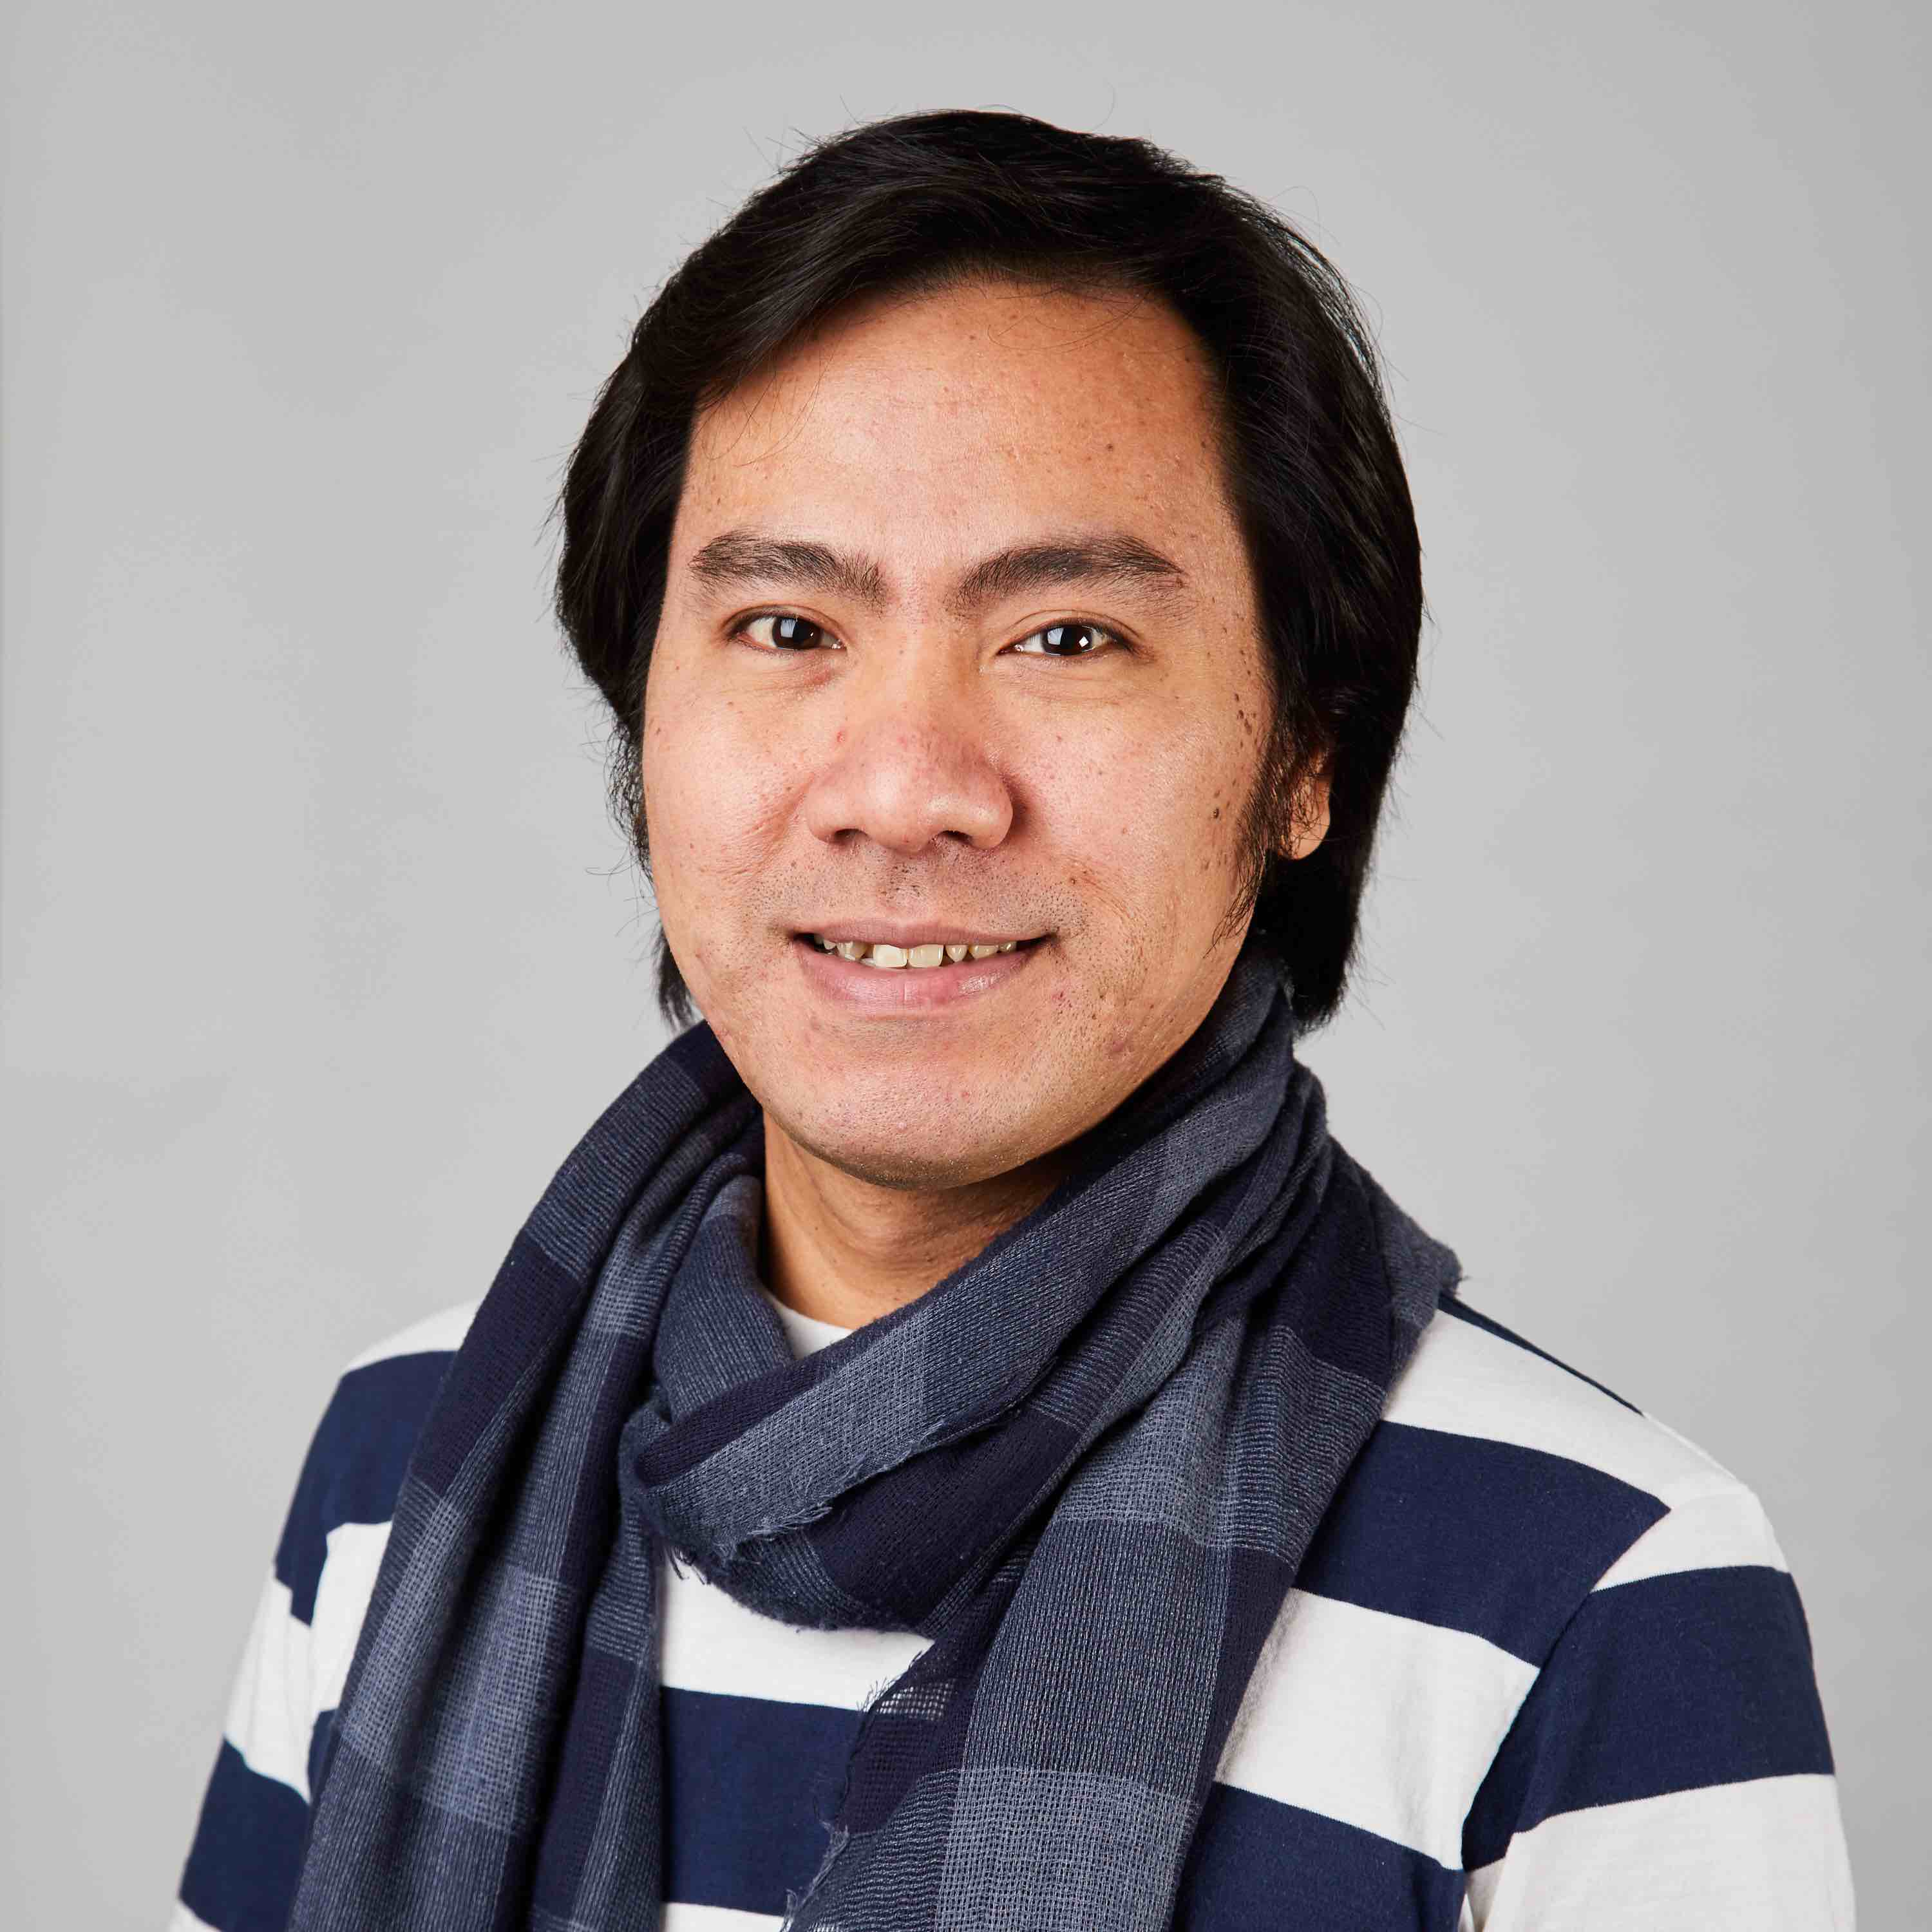 picture of rocsildes canoy - researcher at mobi